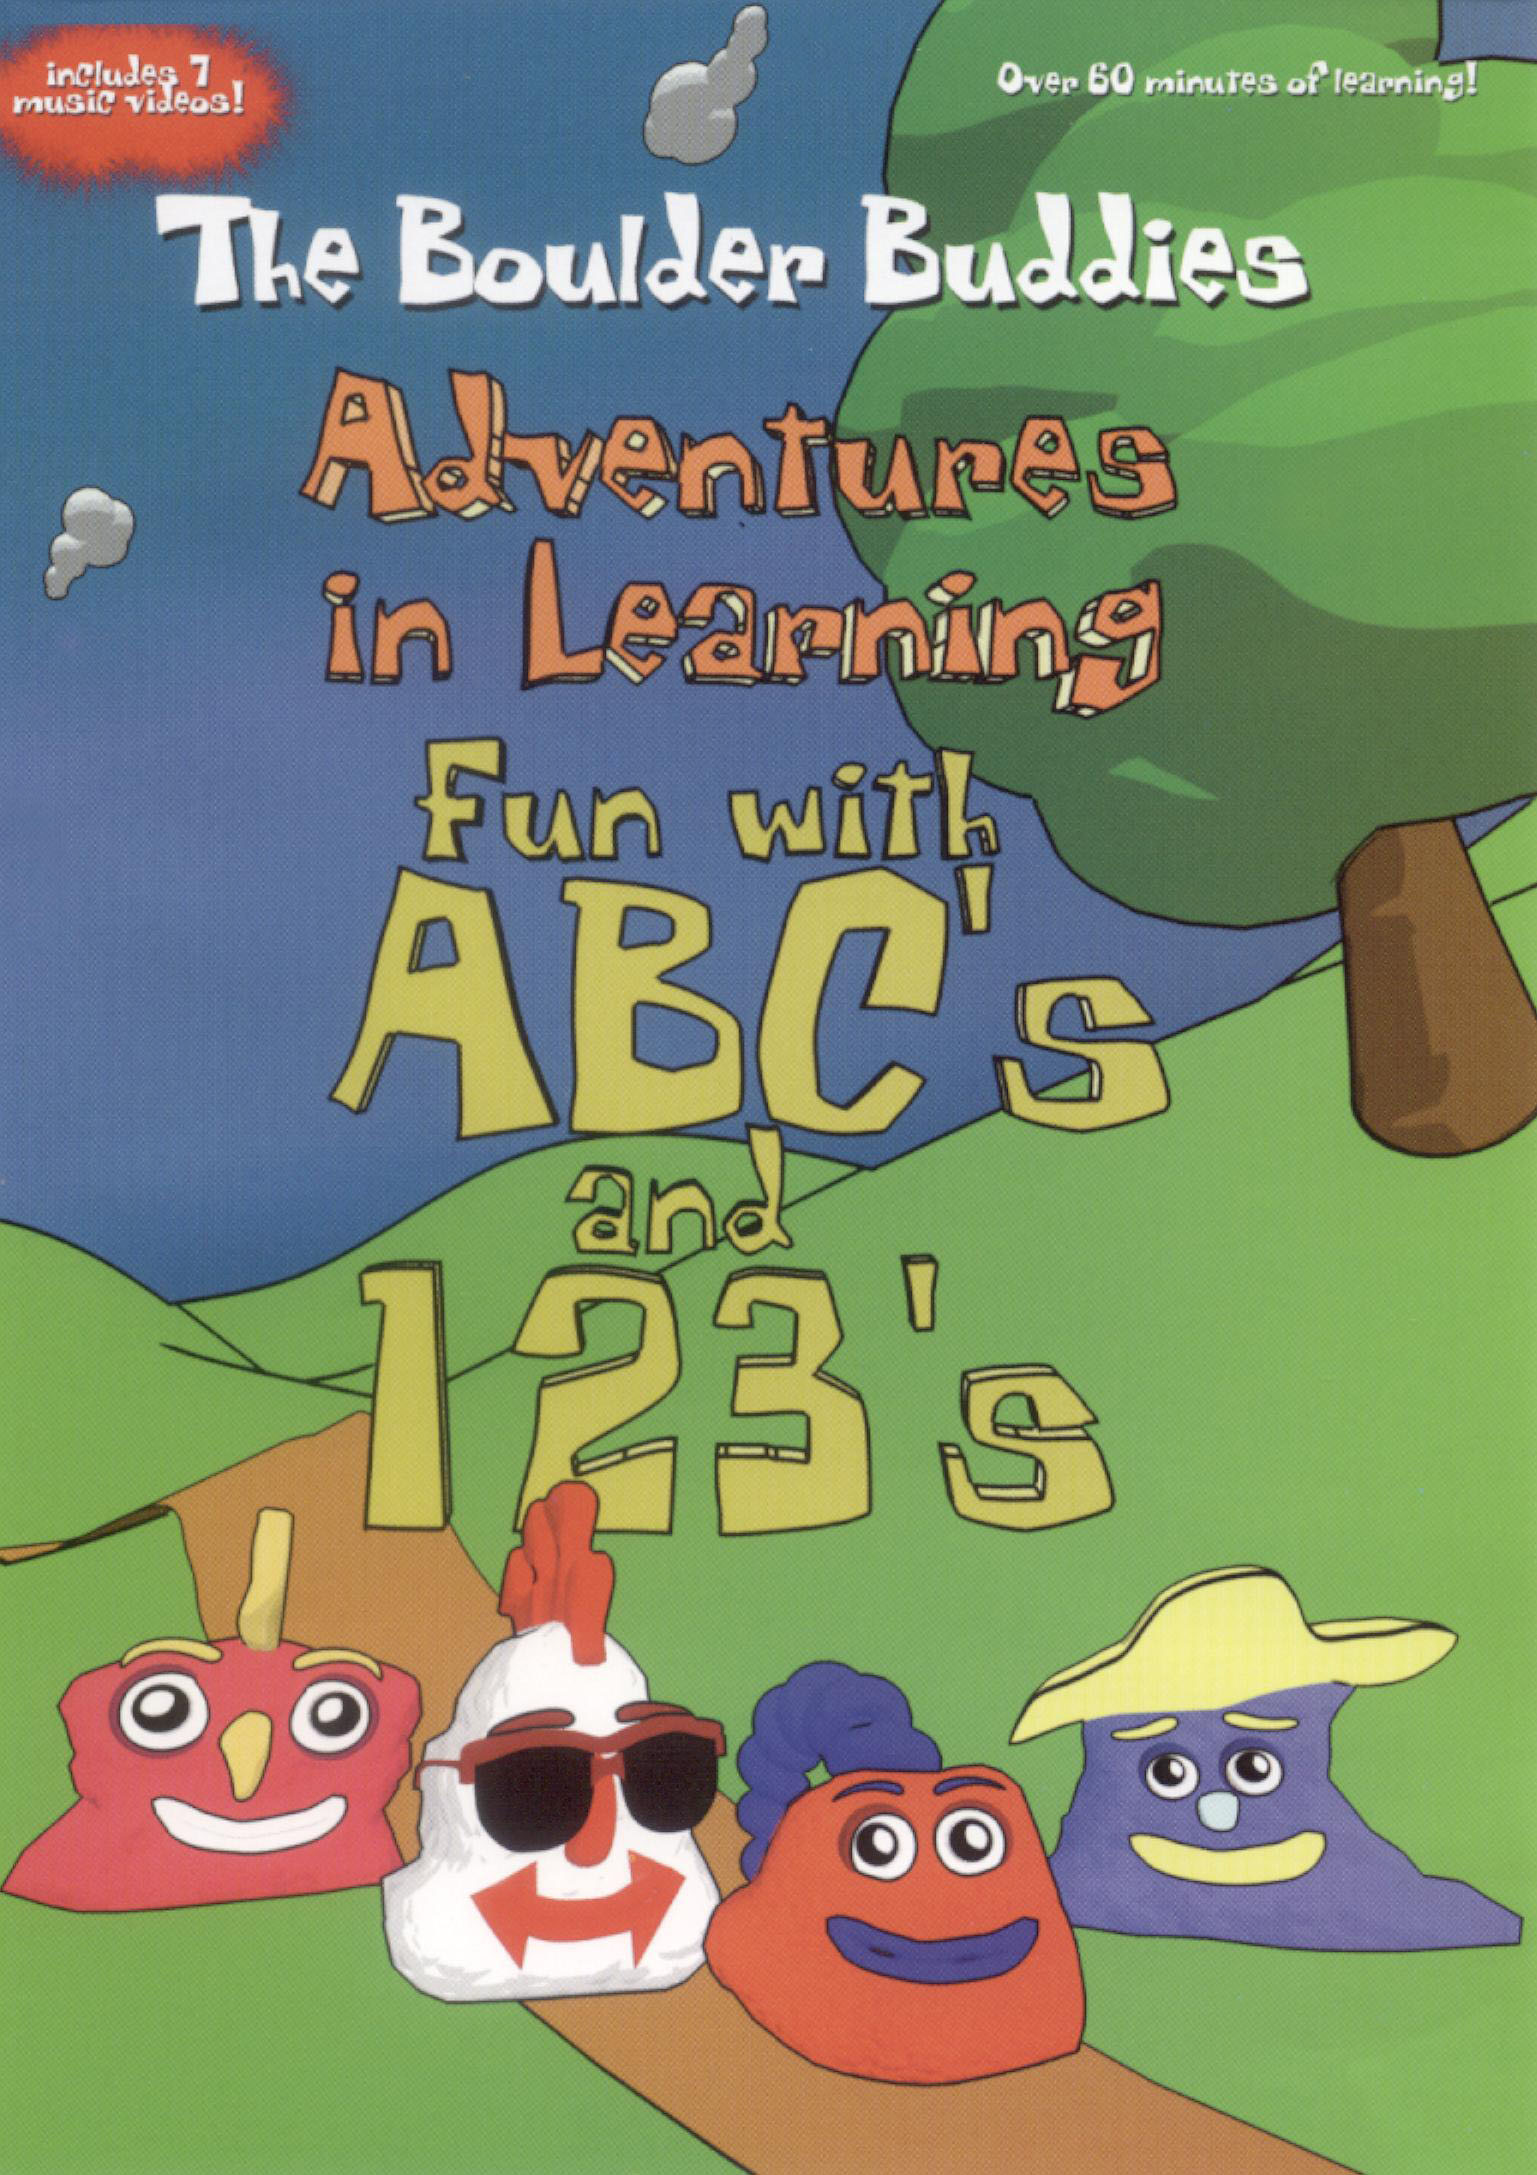 Boulder Buddies - Adventures in Learning: Fun with ABC's and 123's